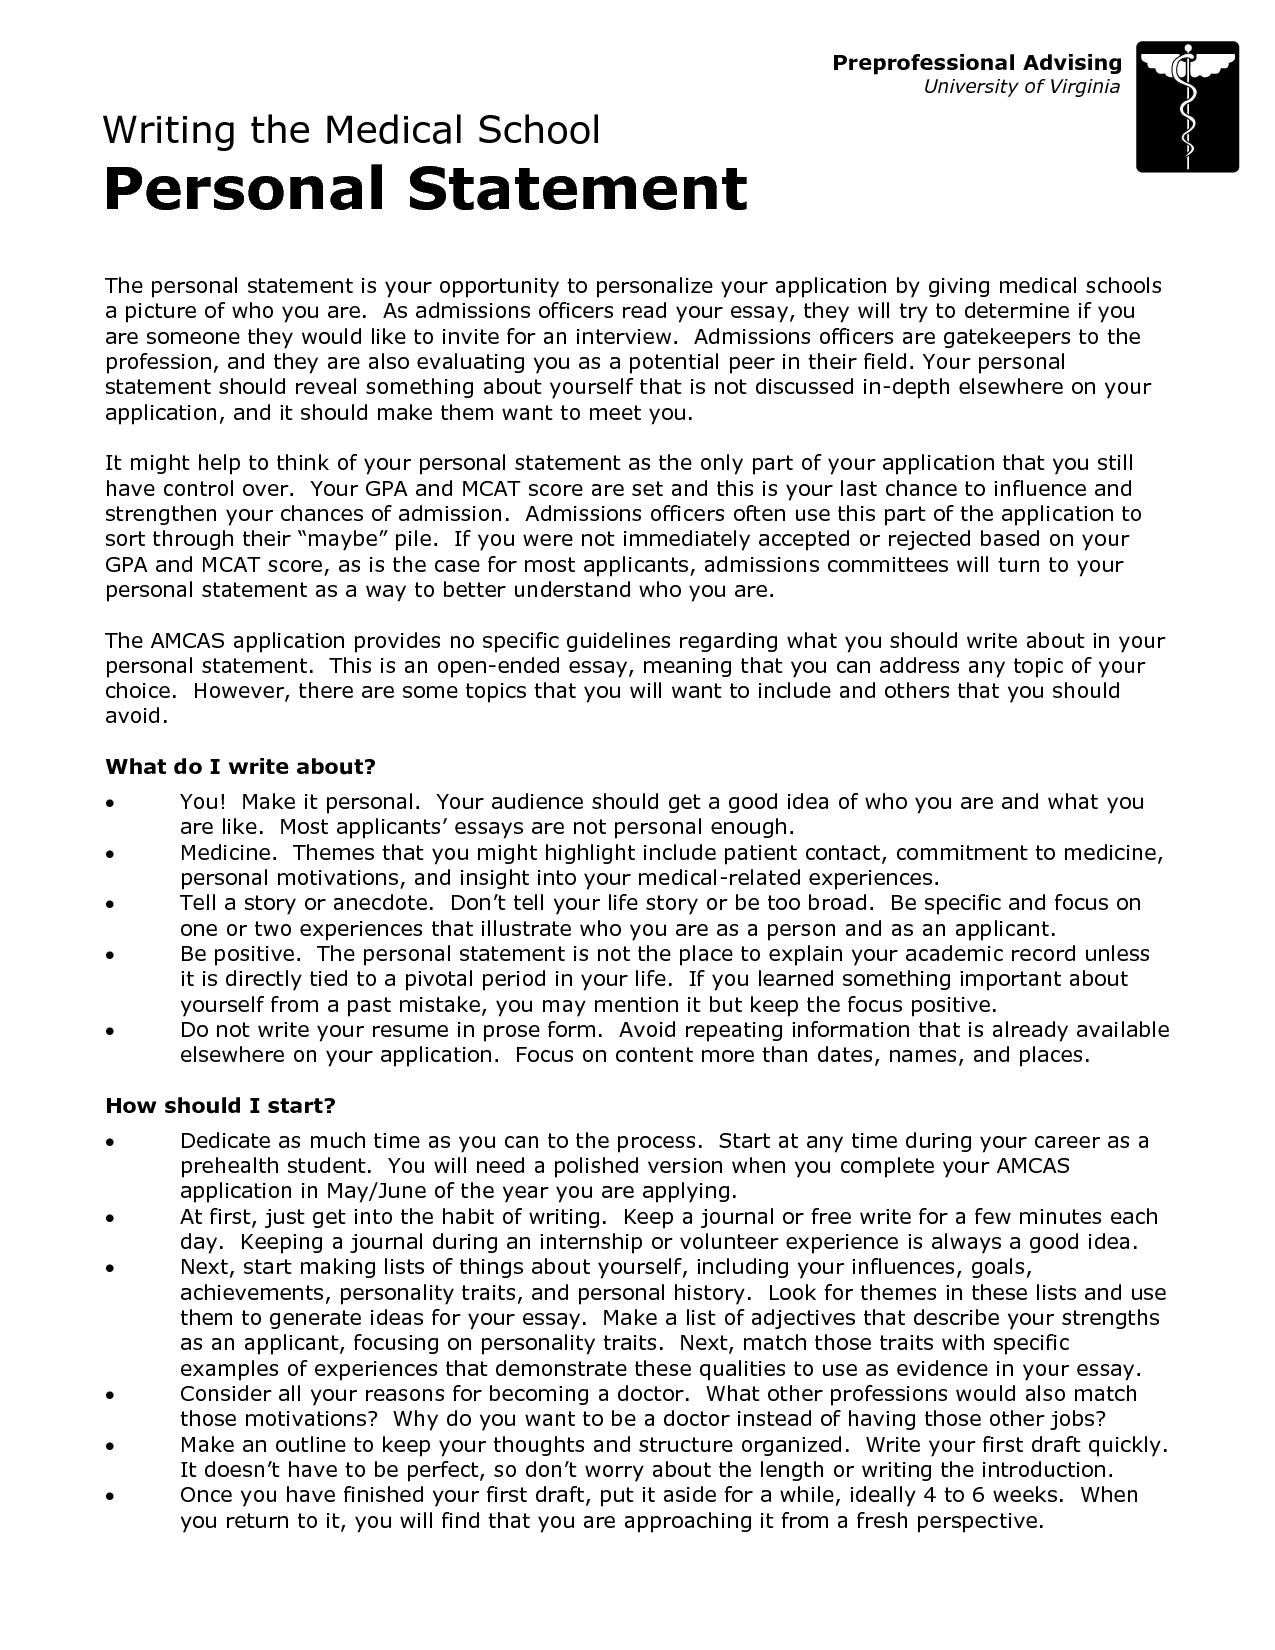 optometry school application essays Personal statement prompt: optomcas essay prompts may be different based on the individual program however, the main essay prompt for most optometry programs is: secondary applications for optometry school often involve one or several essay questions and a fee.